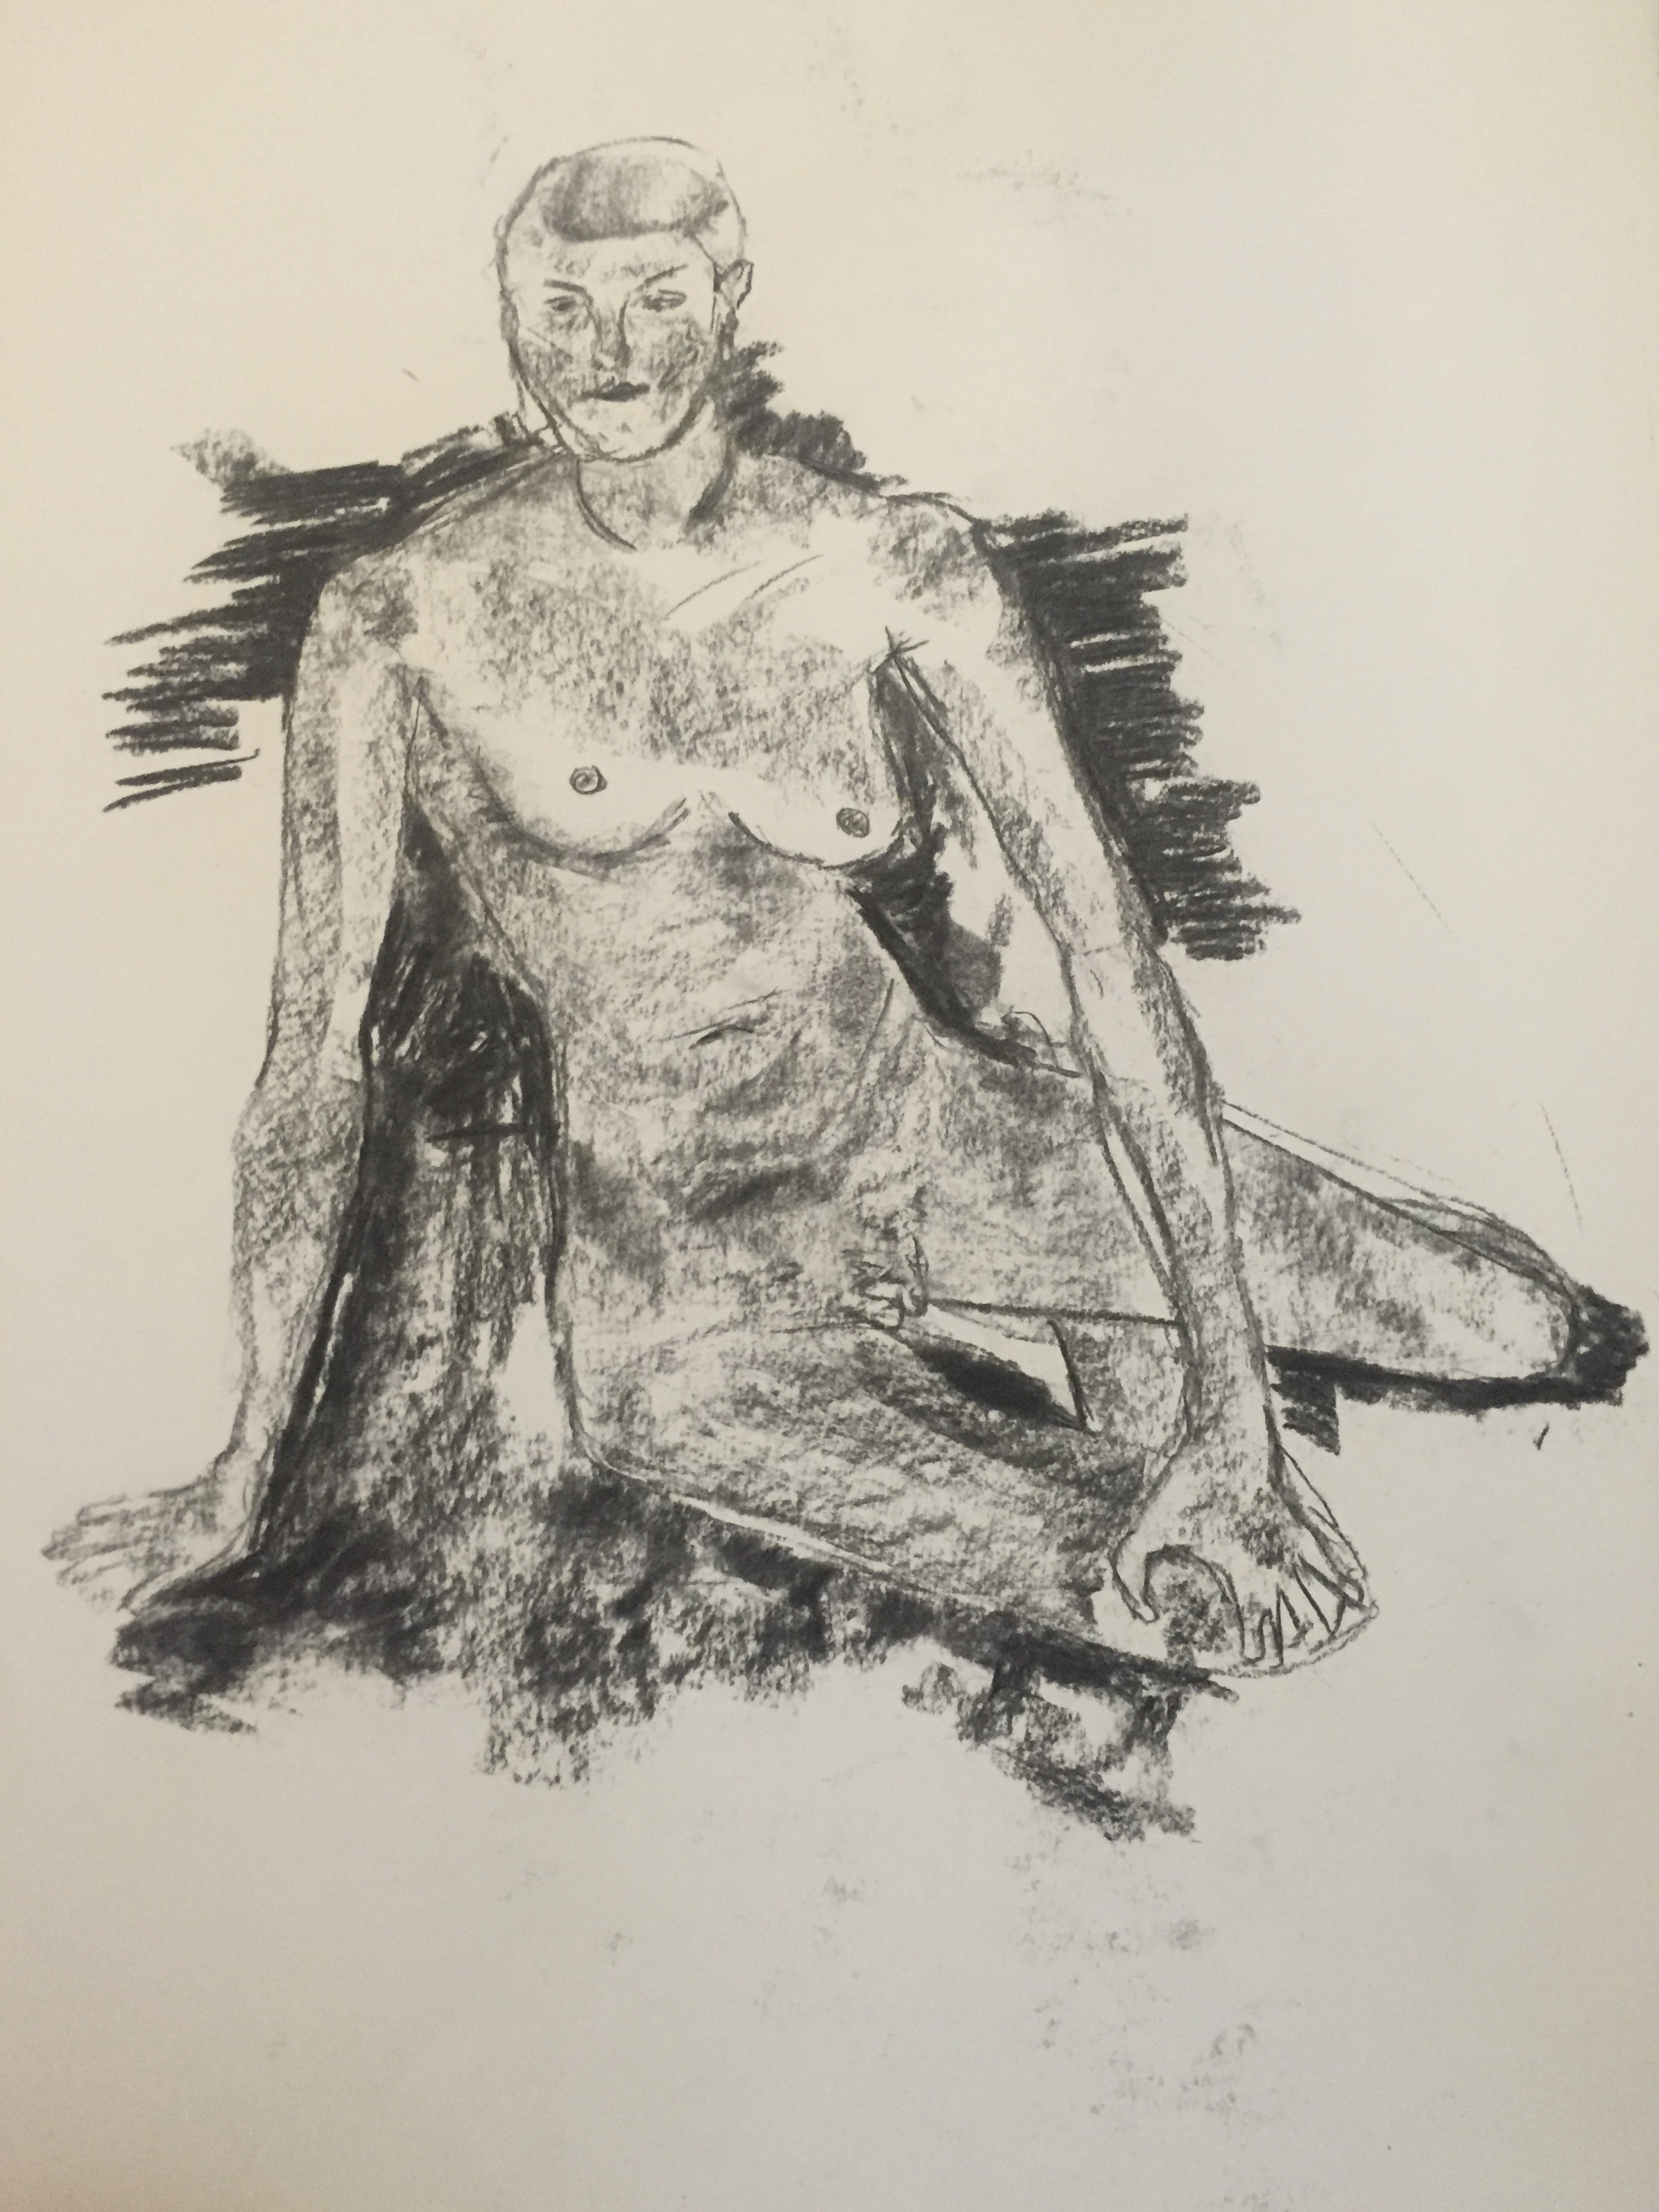 Nude drawing (woman) -charcoal & pencil